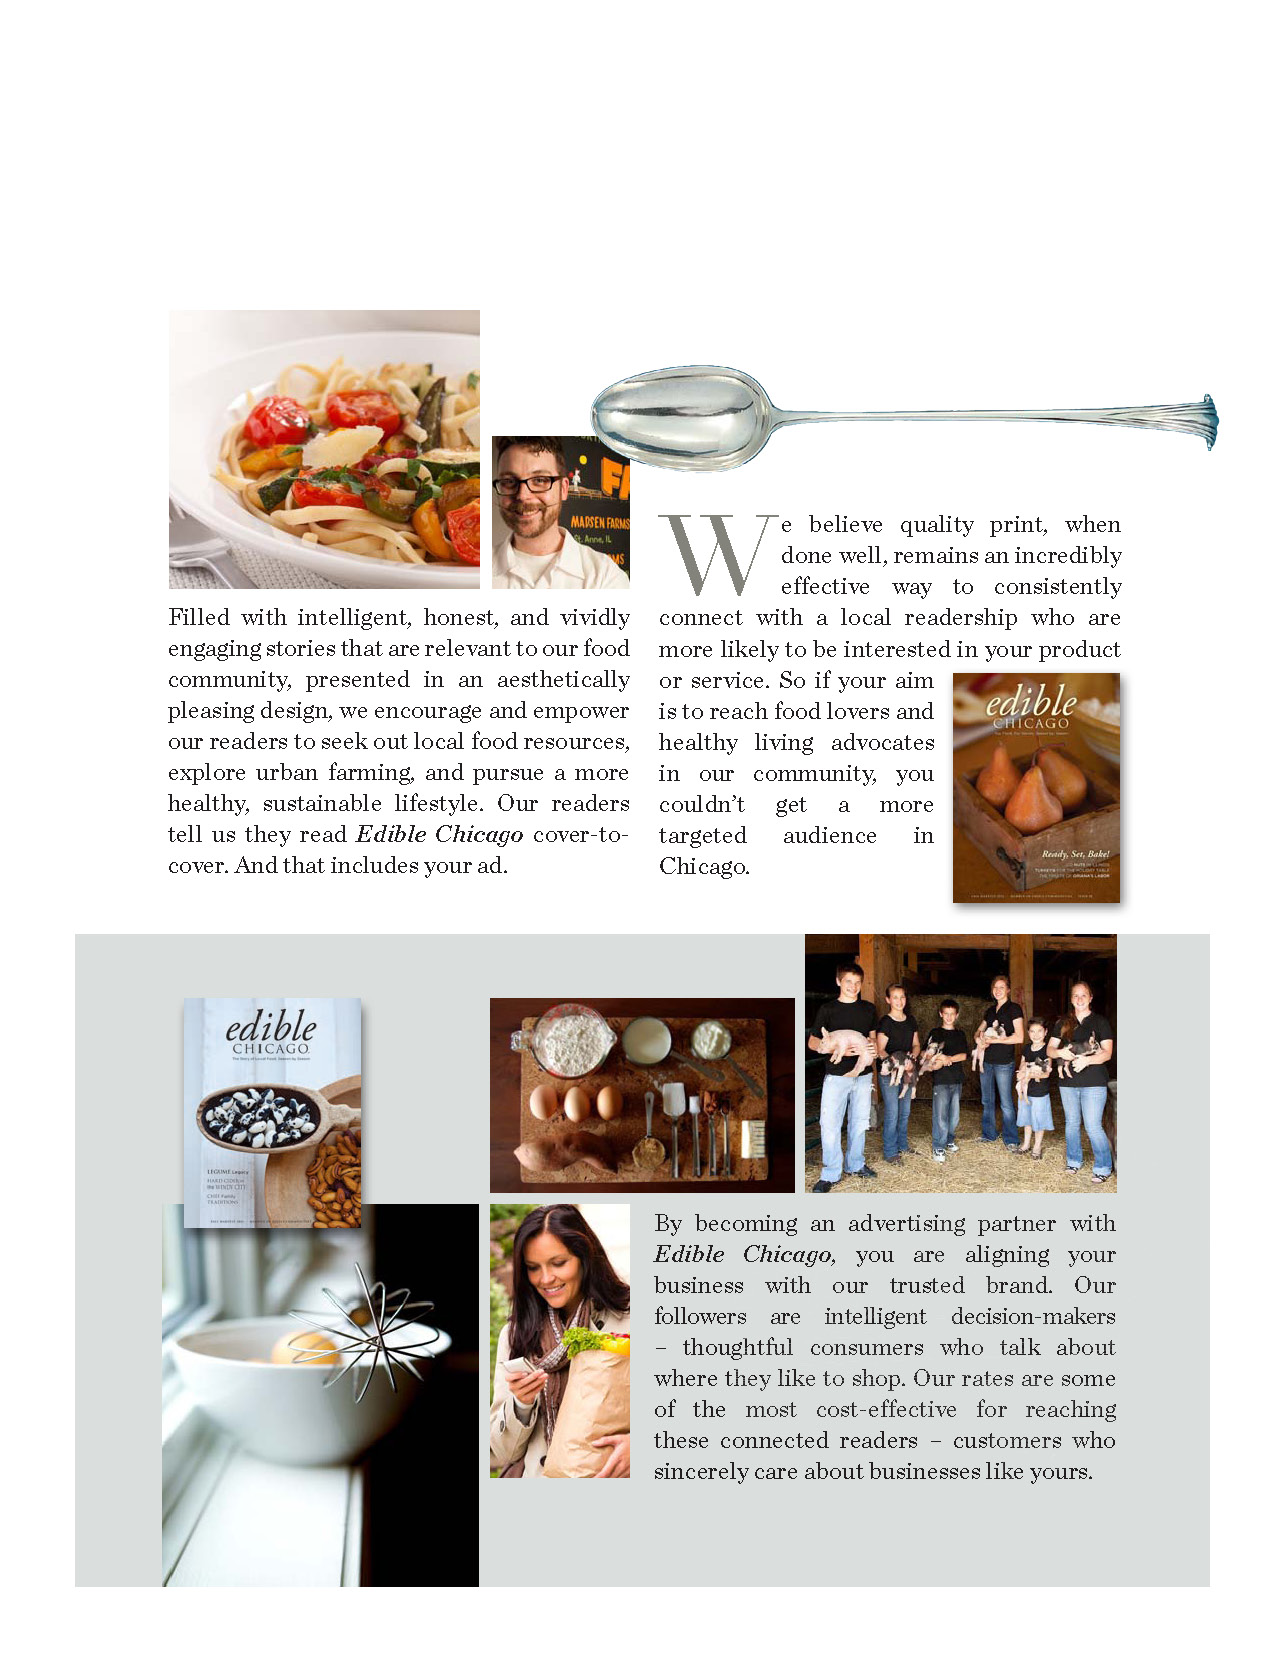 Edible Chicago 2014 Media Kit with Rate Card_Page_04.jpg